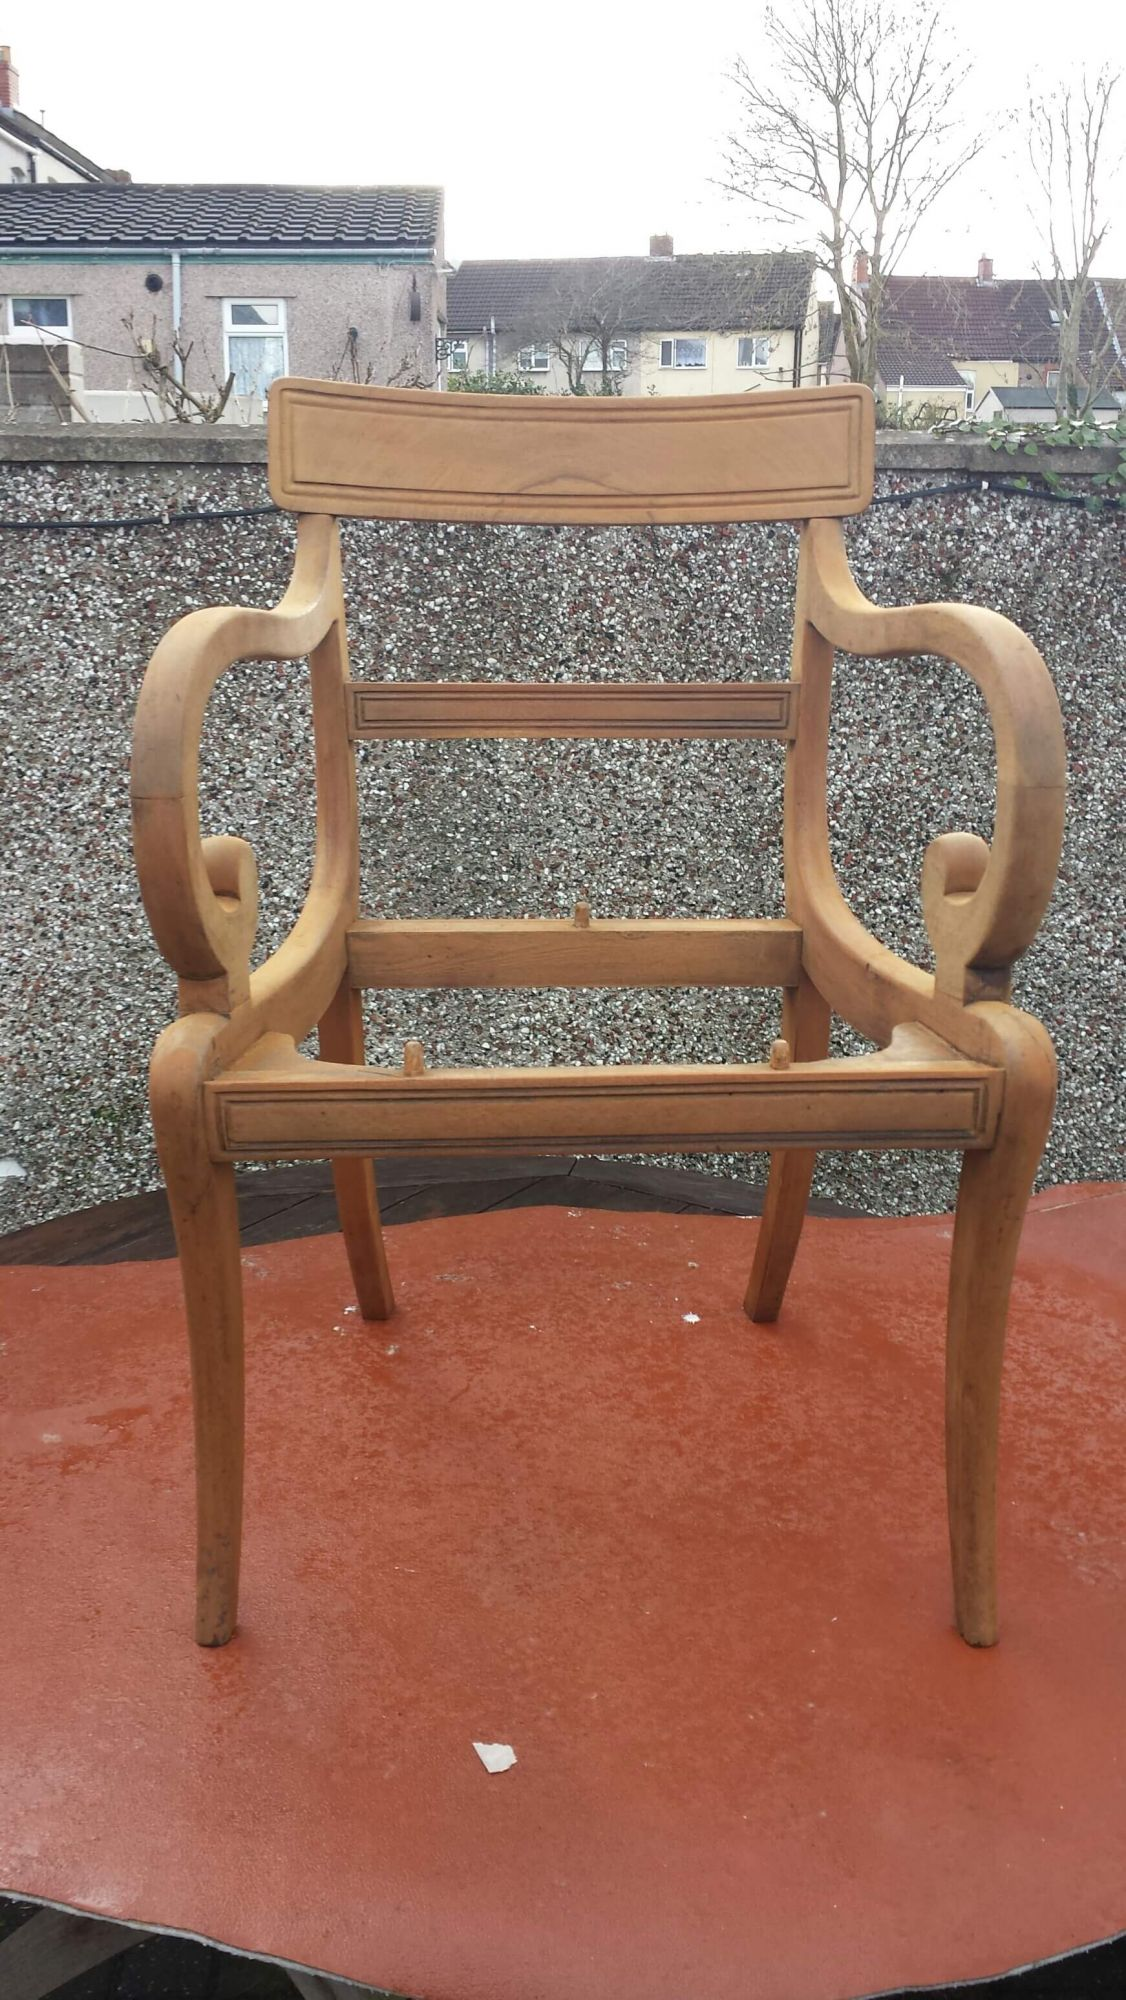 A Traditional French Polish Finish Provides A Beautiful Wood Finish For  Period And Antique Furniture And